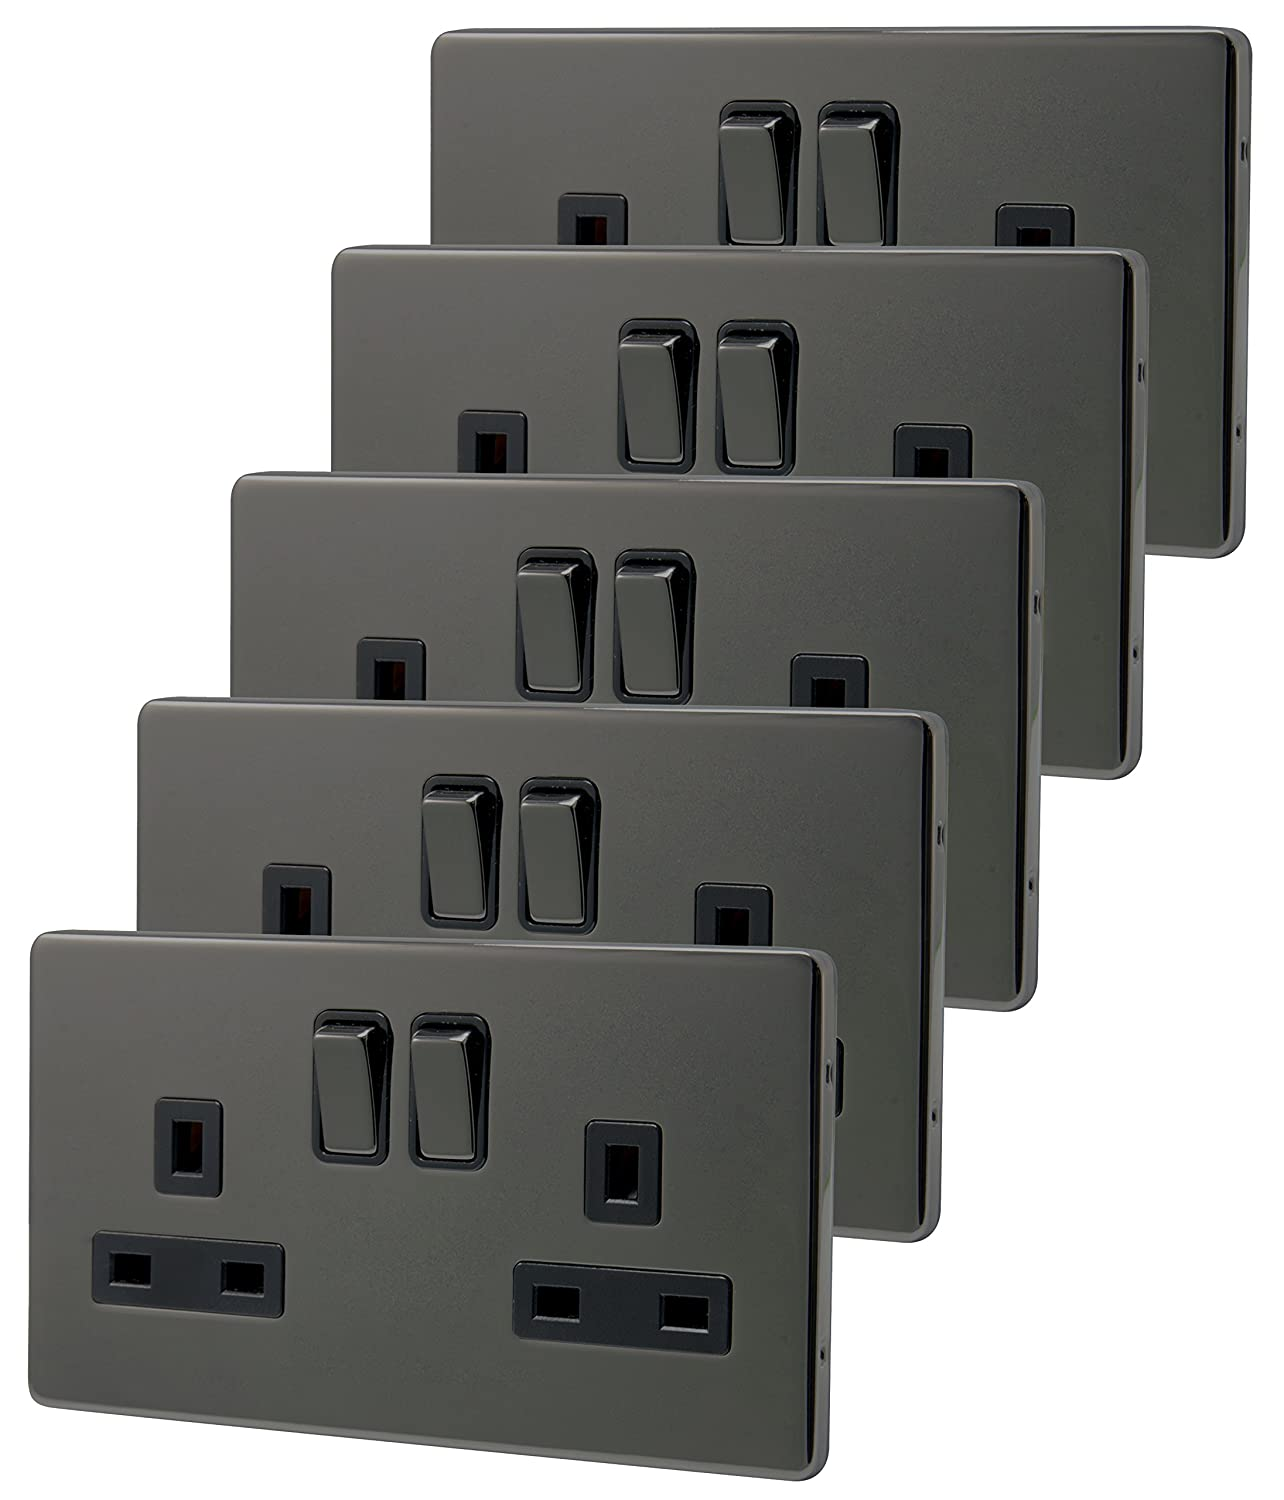 5 x Double Wall Socket Switched Black Nickel 2 Gang Screwless 13a Double Pole N410GME Long Life Lamp Company